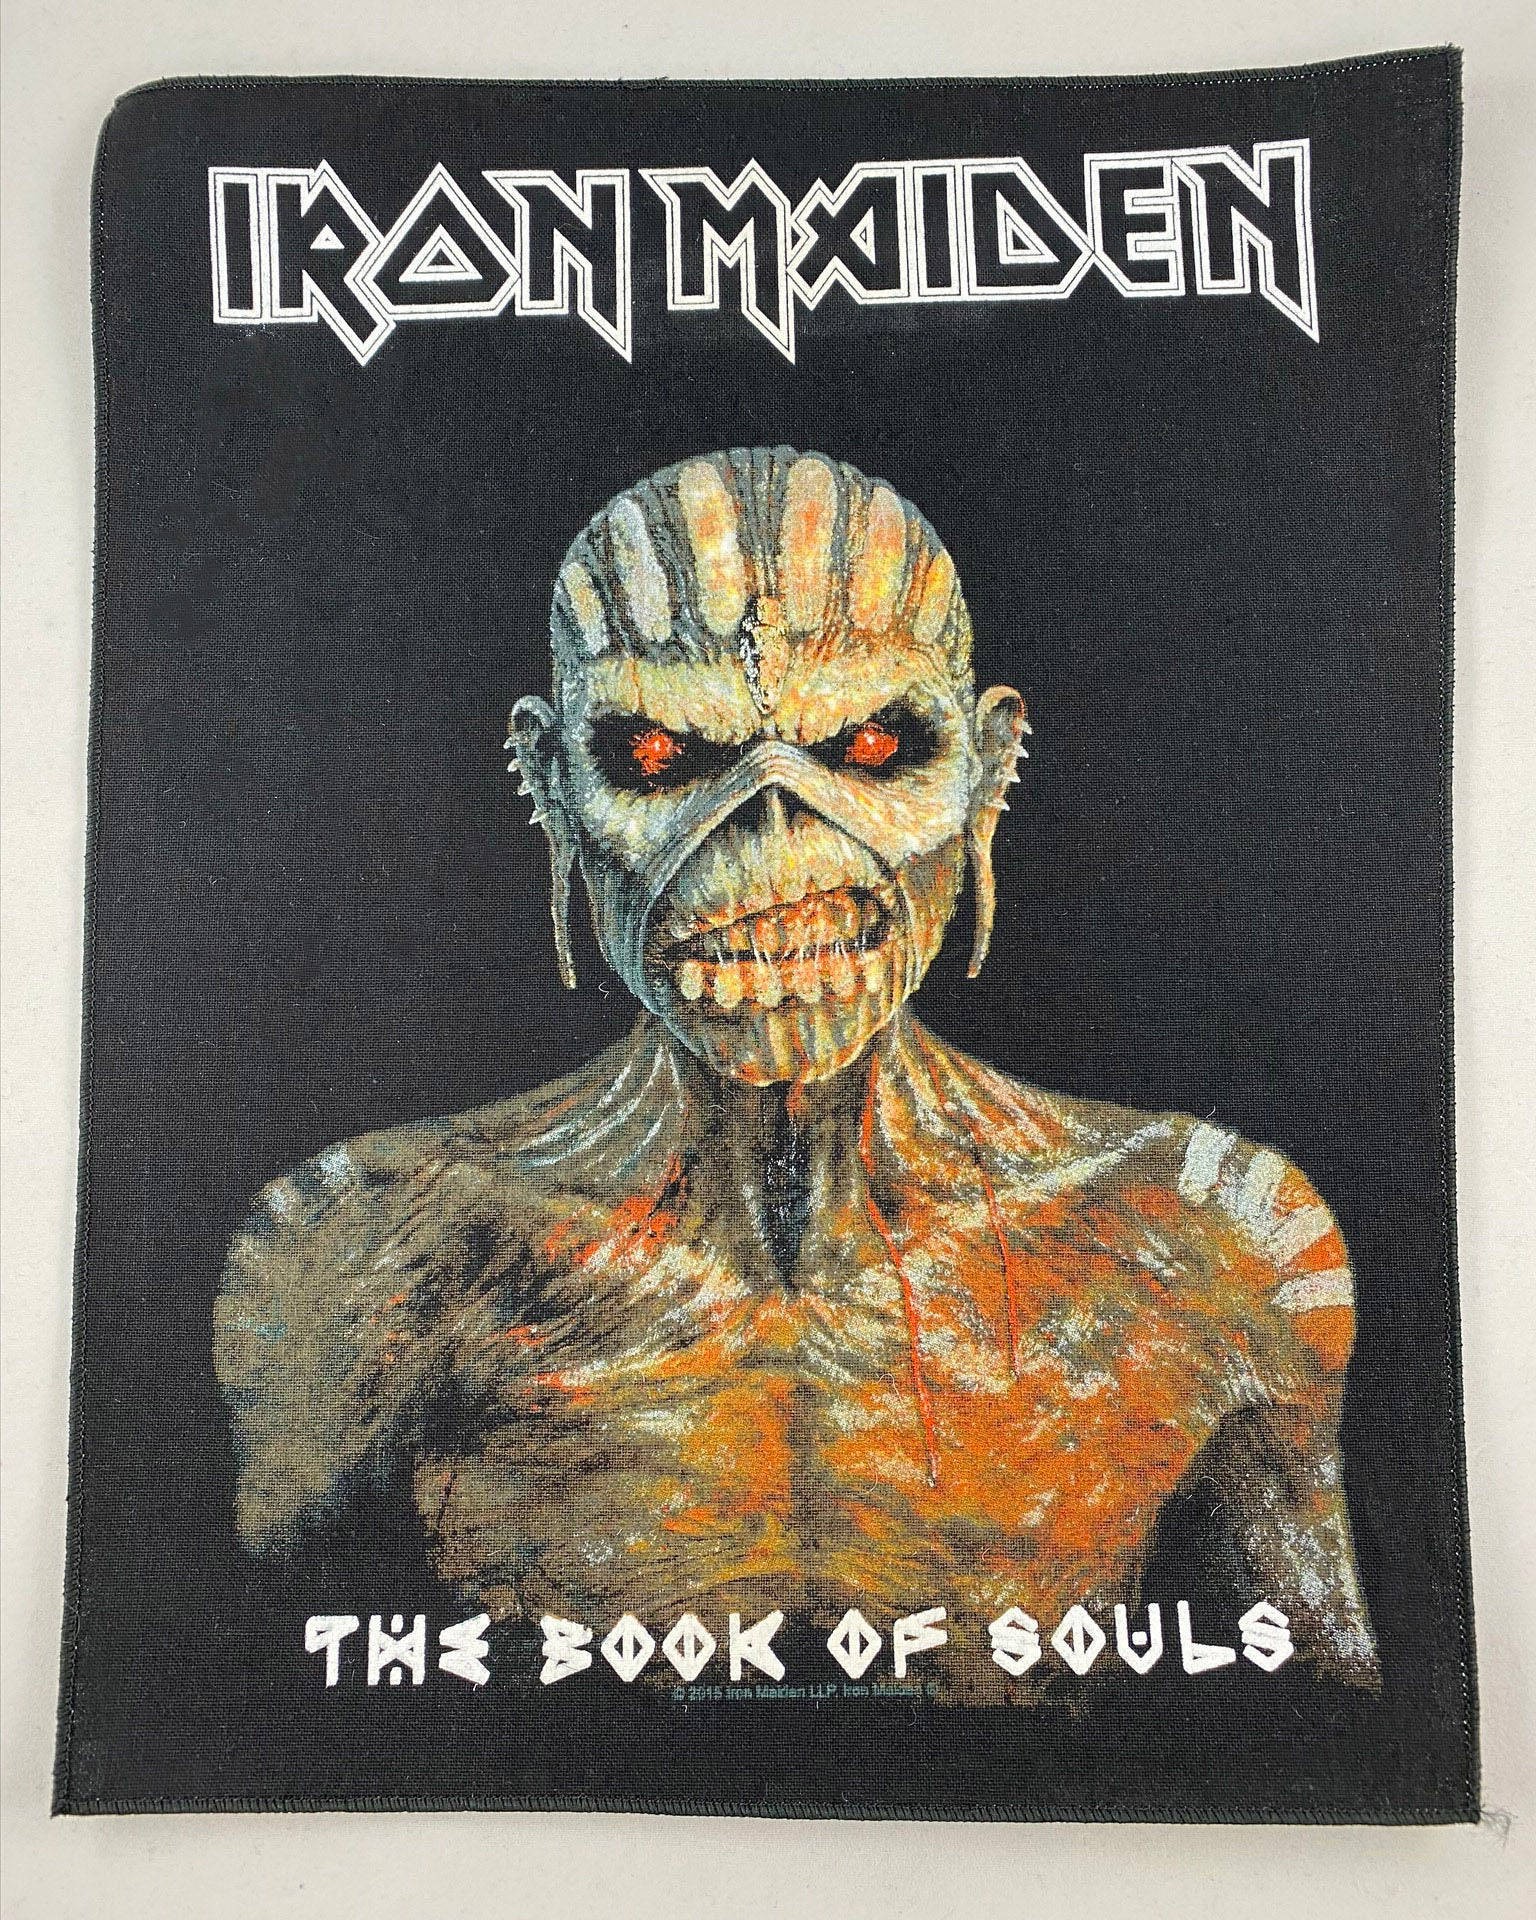 Let it Be - Music Merch Iron Maiden Sew On Cotton Jacket Back Patch - Book of Souls